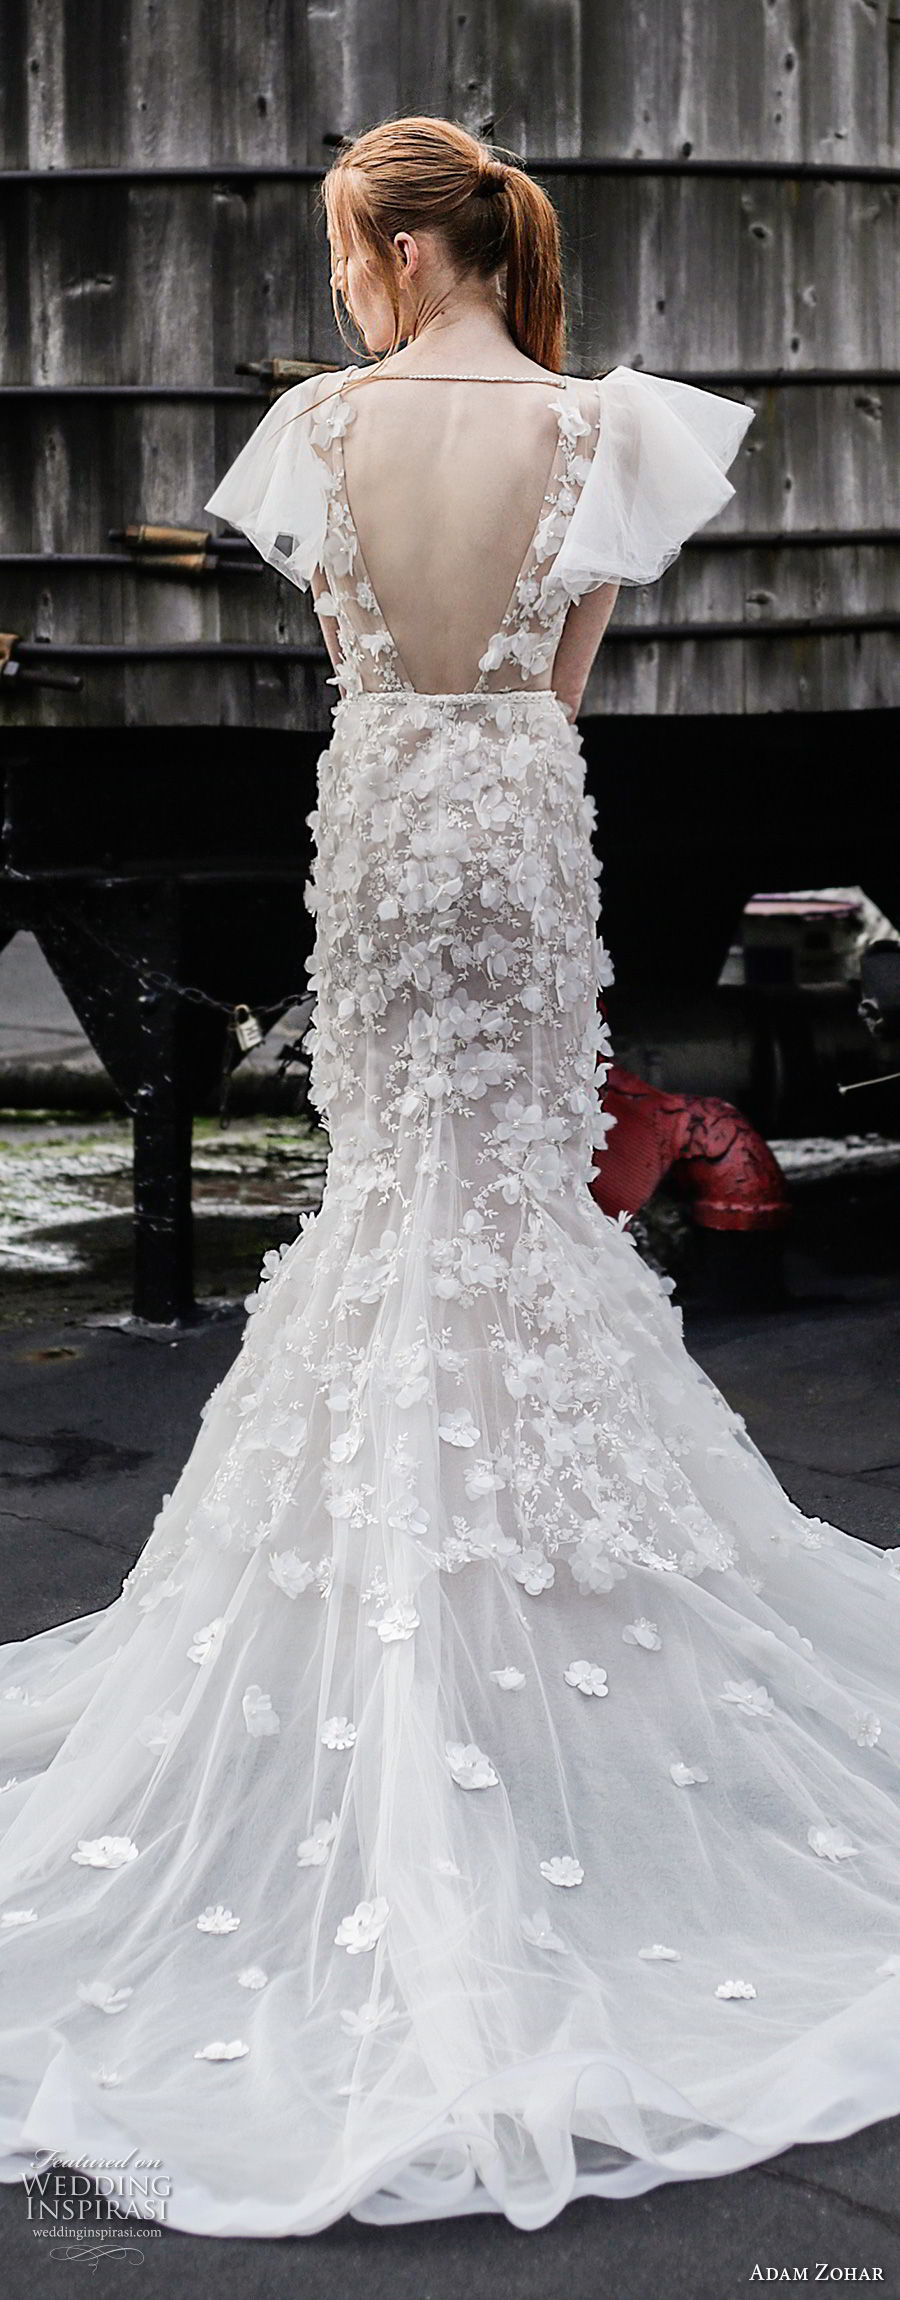 adam zohar 2017 bridal butterfly sleeves illusion bateau deep plunging v neck full embellishment sexy romantic mermaid wedding dress open back chapel train (13) bv